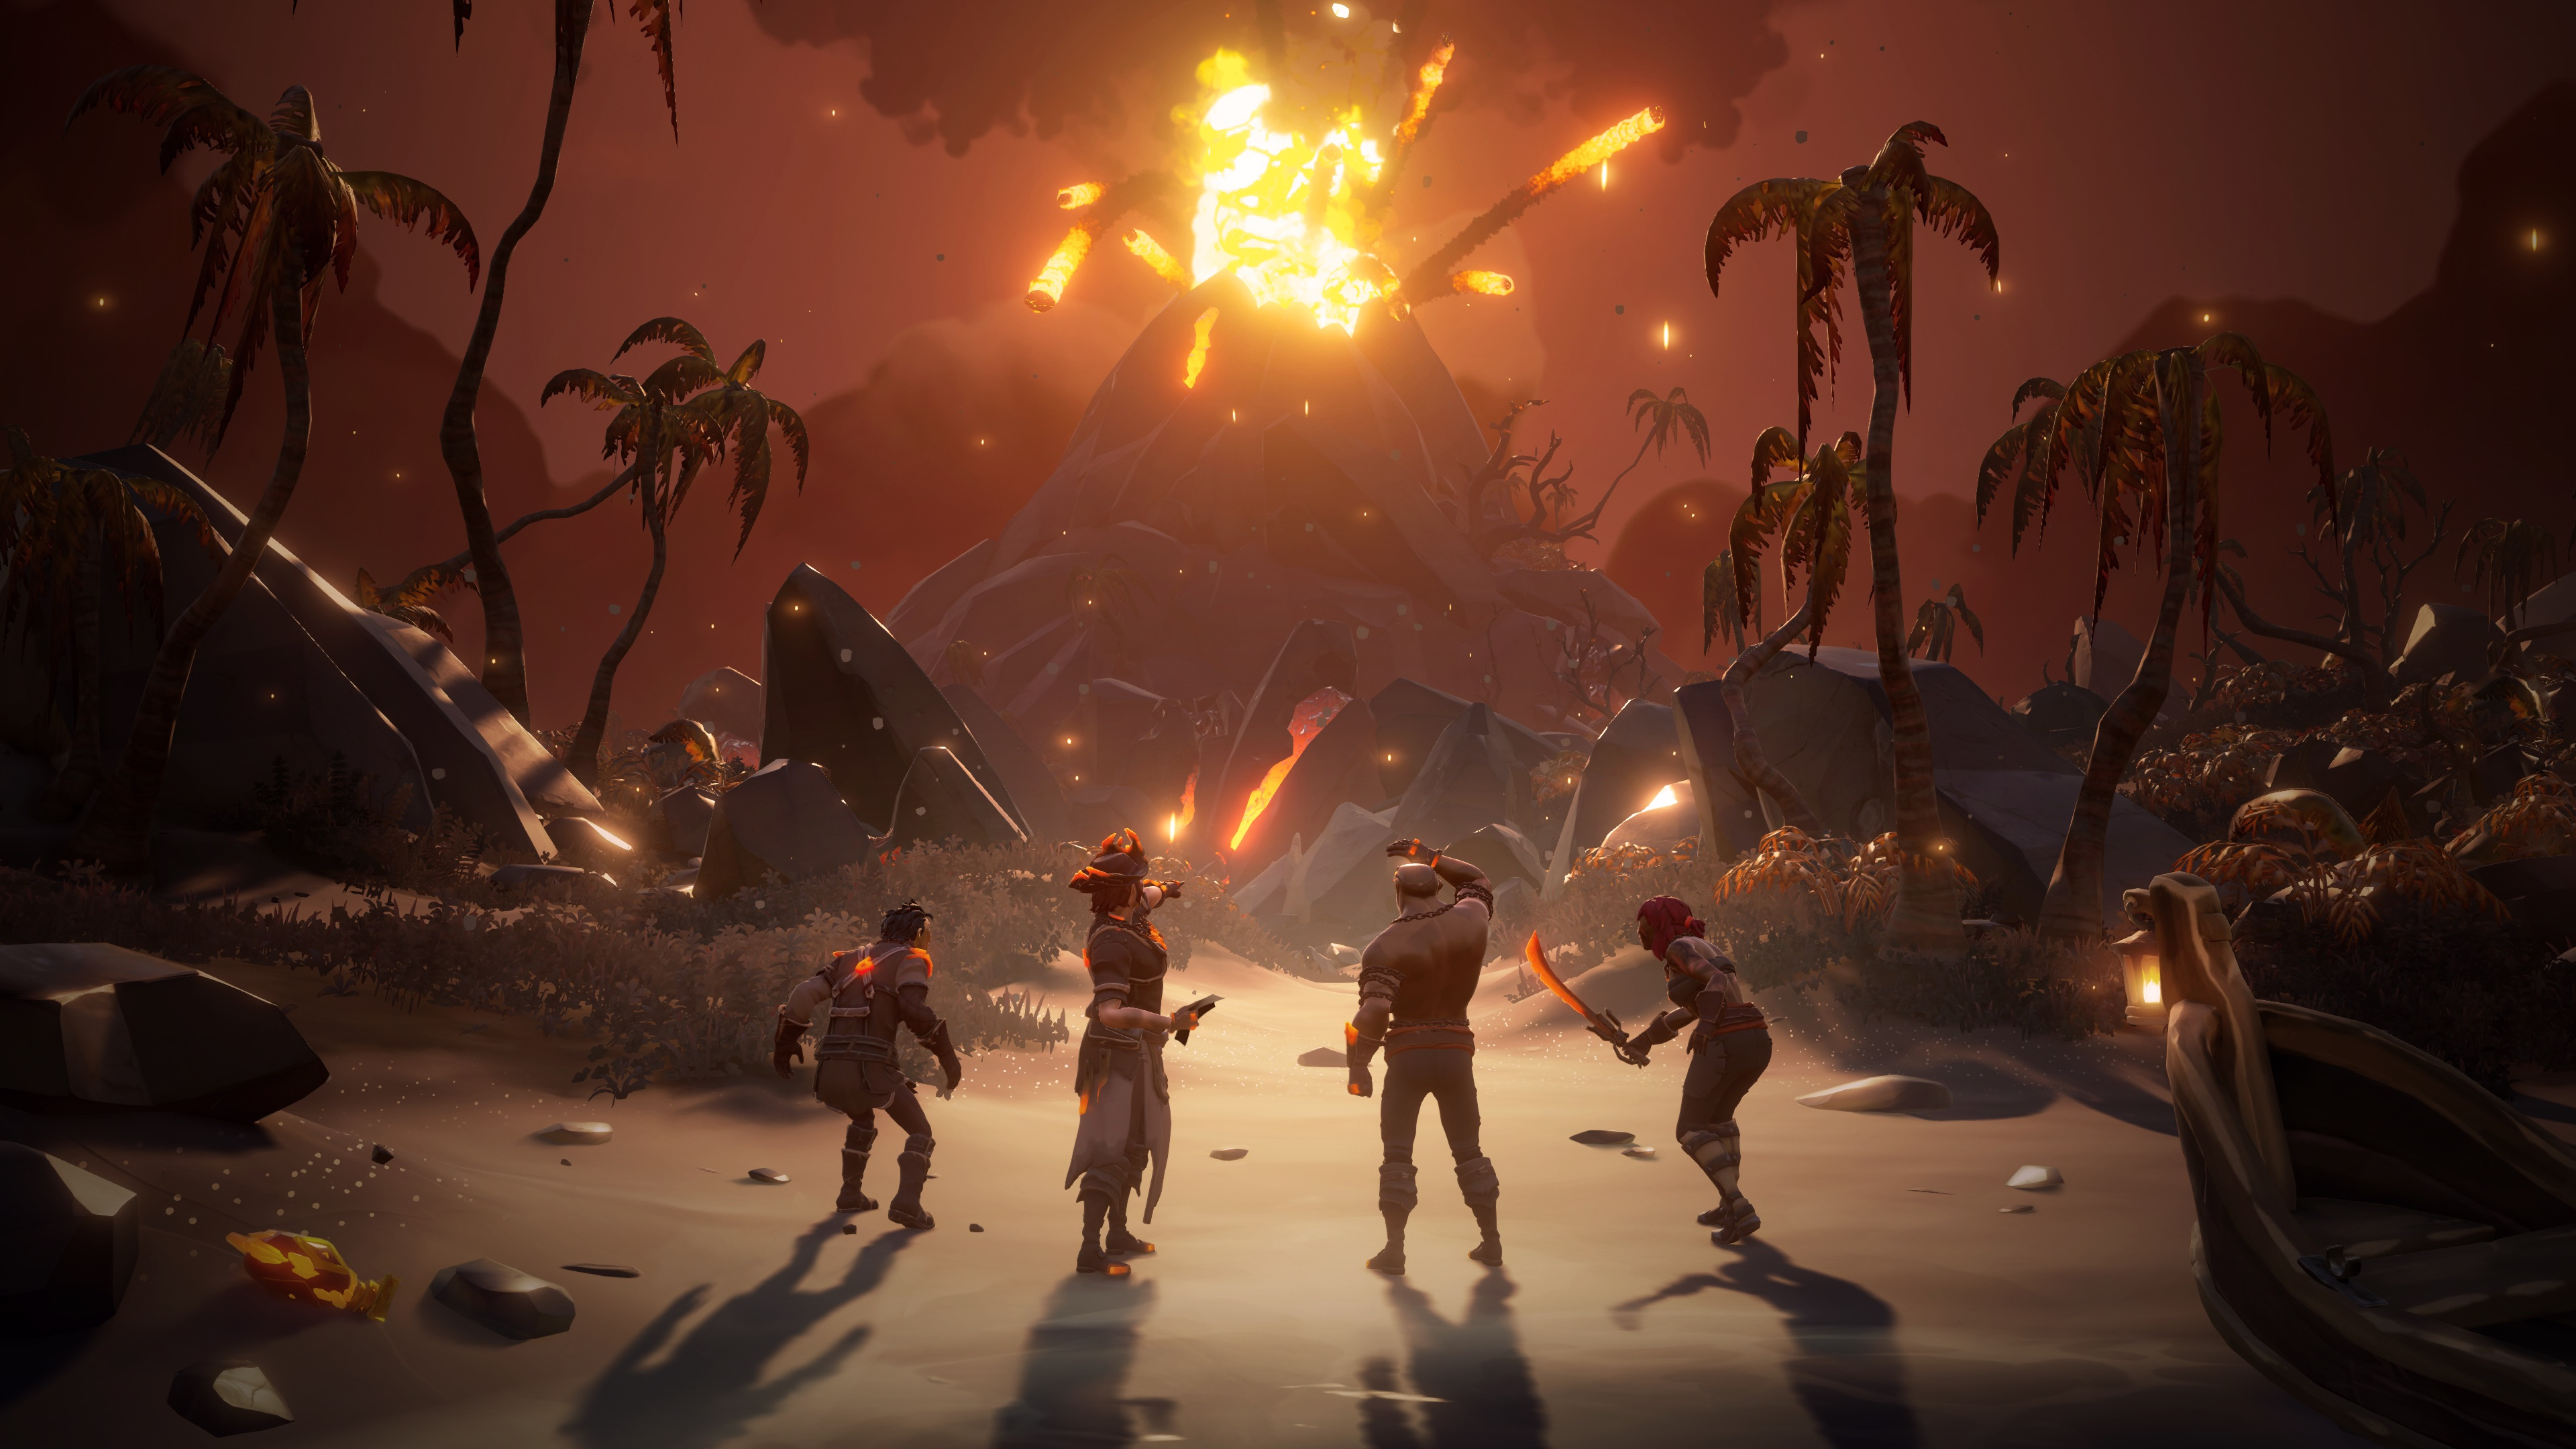 Sea of Thieves – The story continues